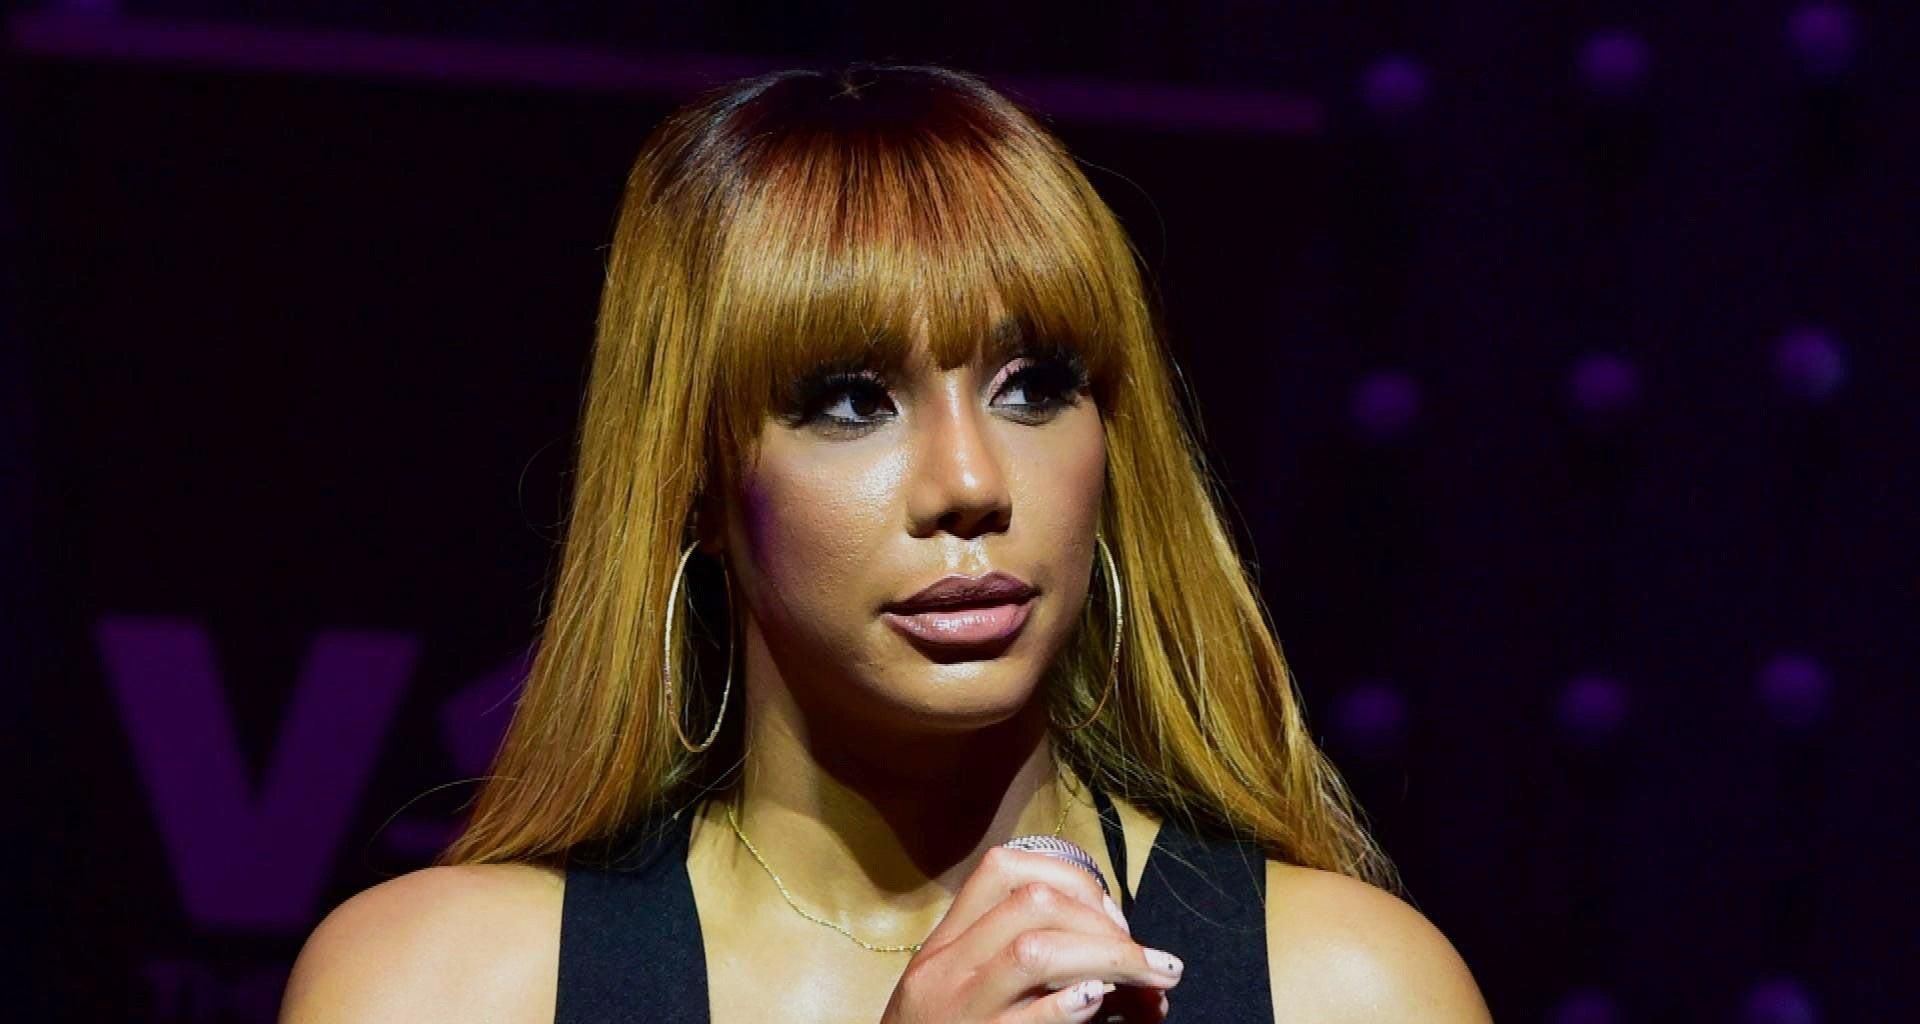 Tamar Braxton Is Grateful For New Beginnings - Check Out Her Video